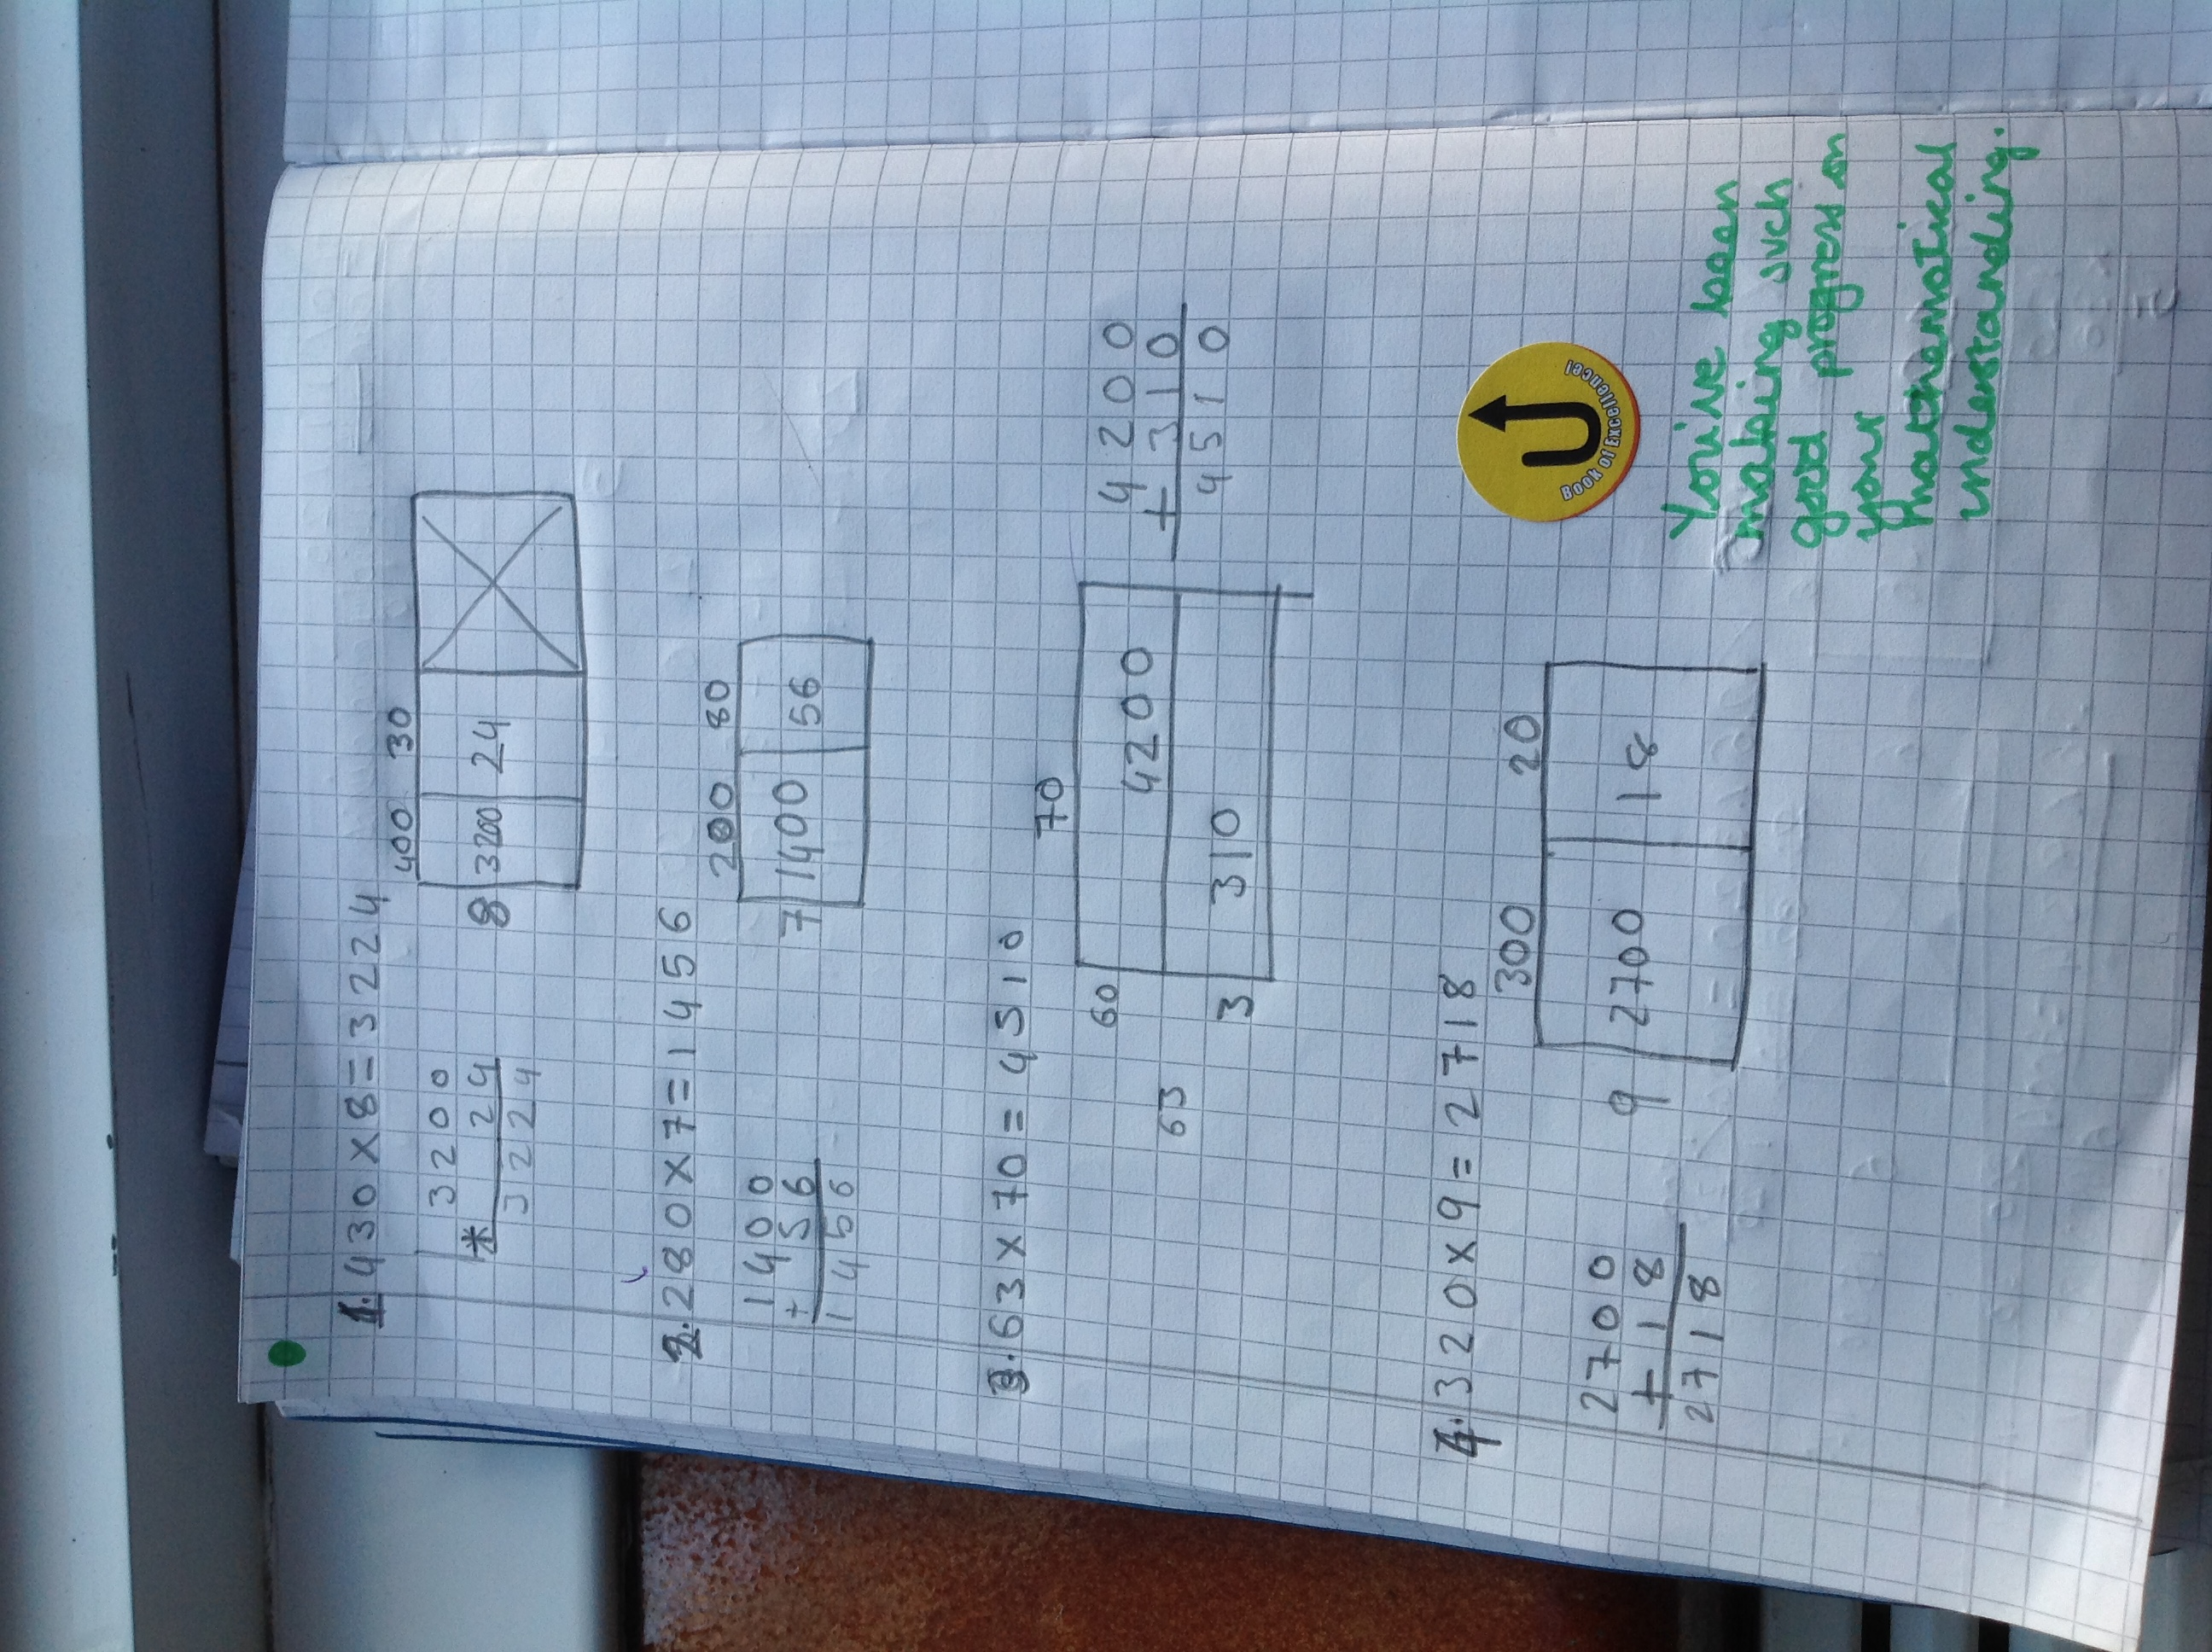 Arina's wonerful maths!